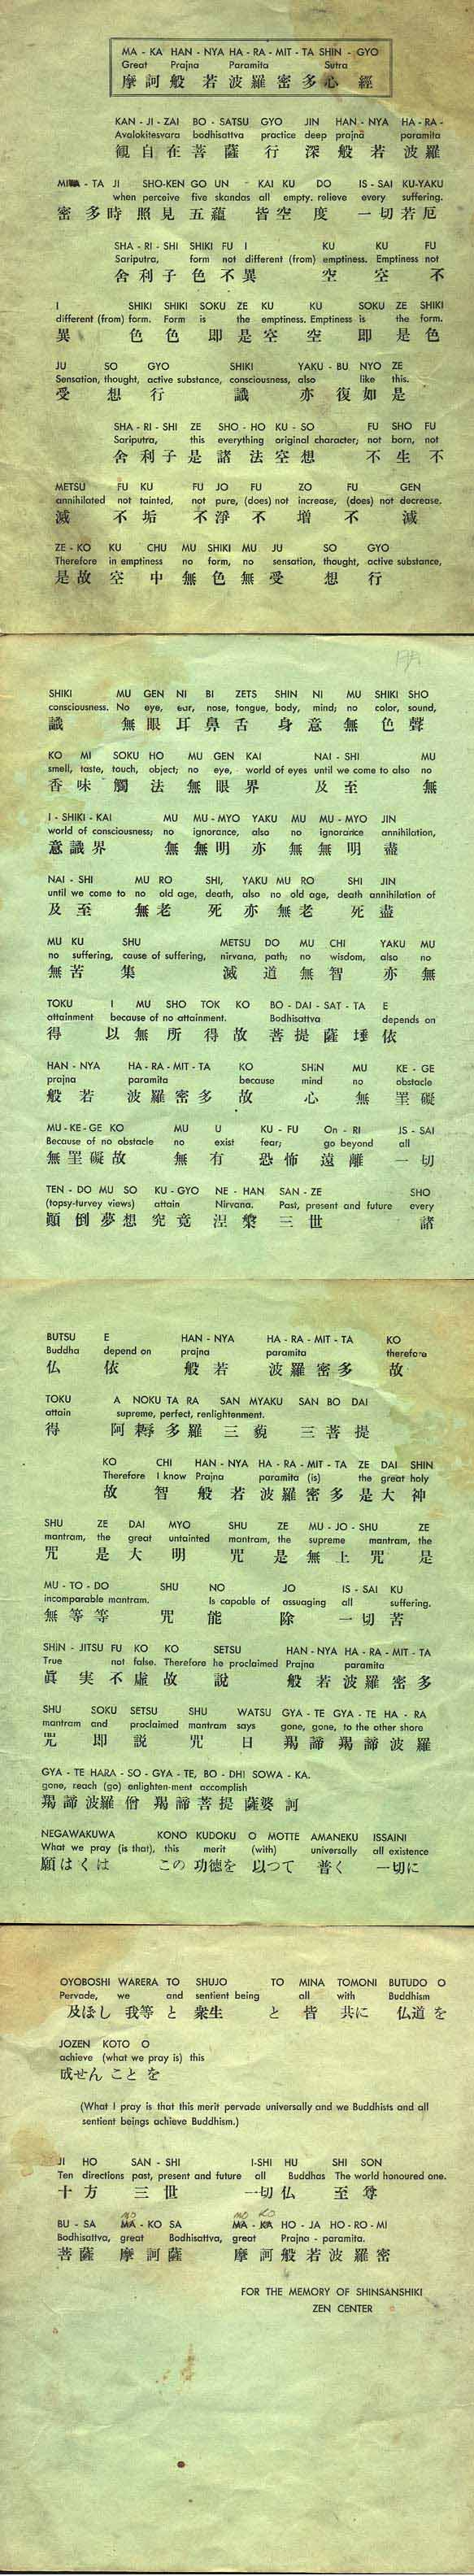 A Chant Card for the Heart Sutra